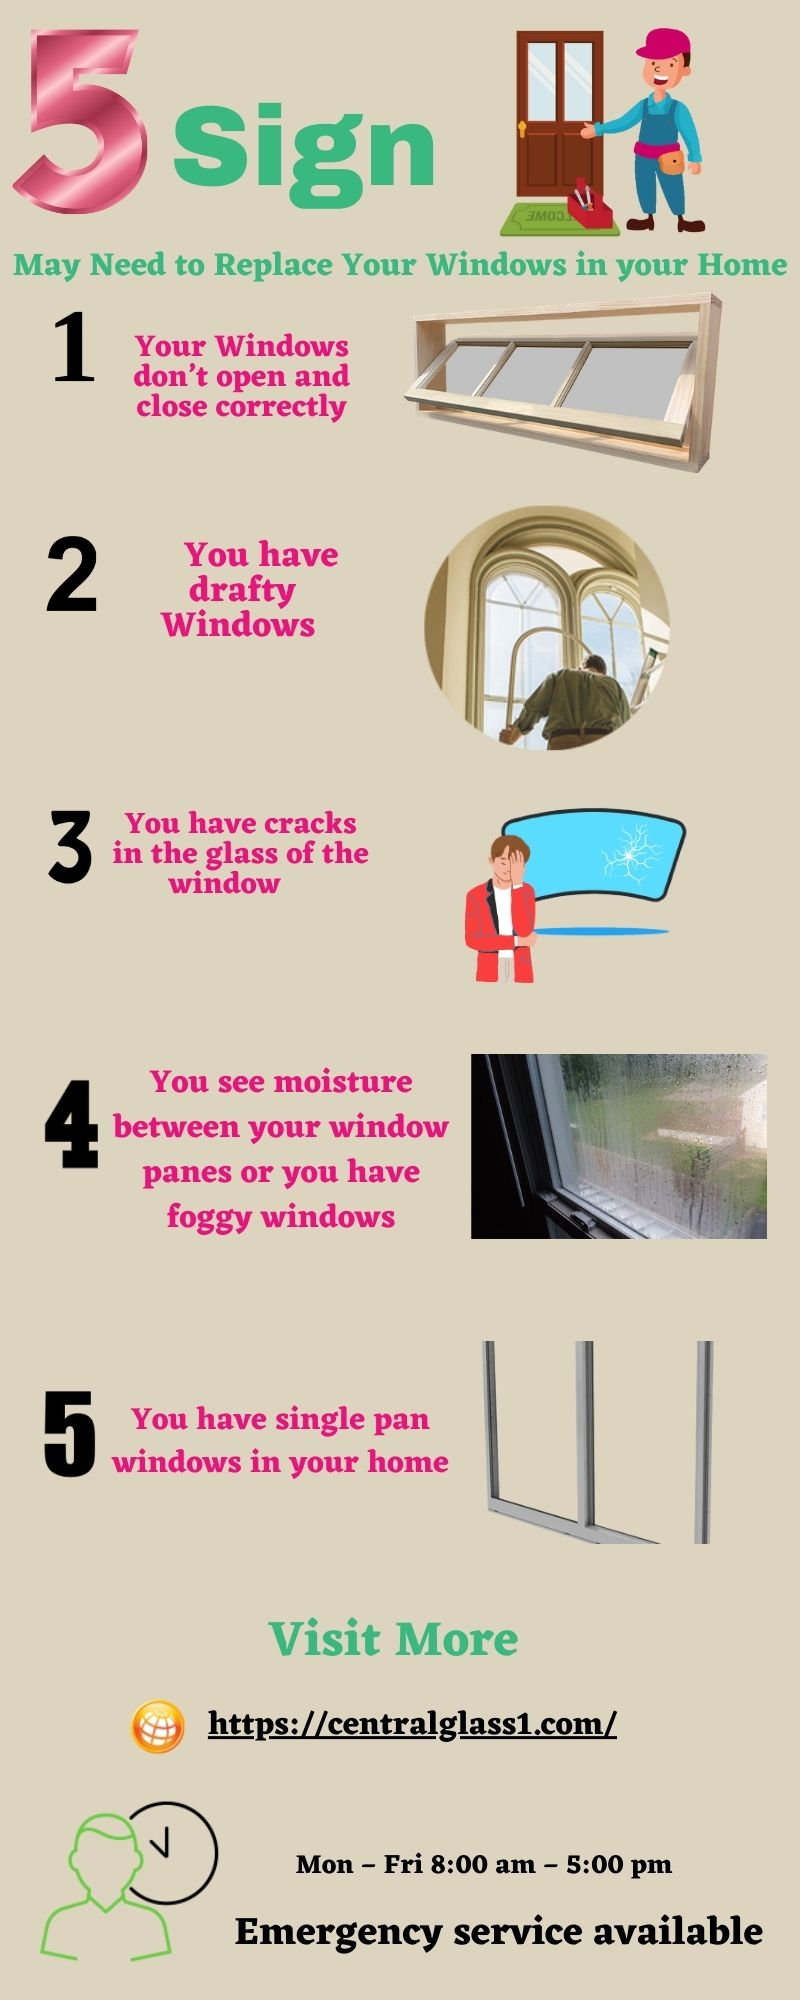 5 Sign May Need to Replace Your Windows in your Home